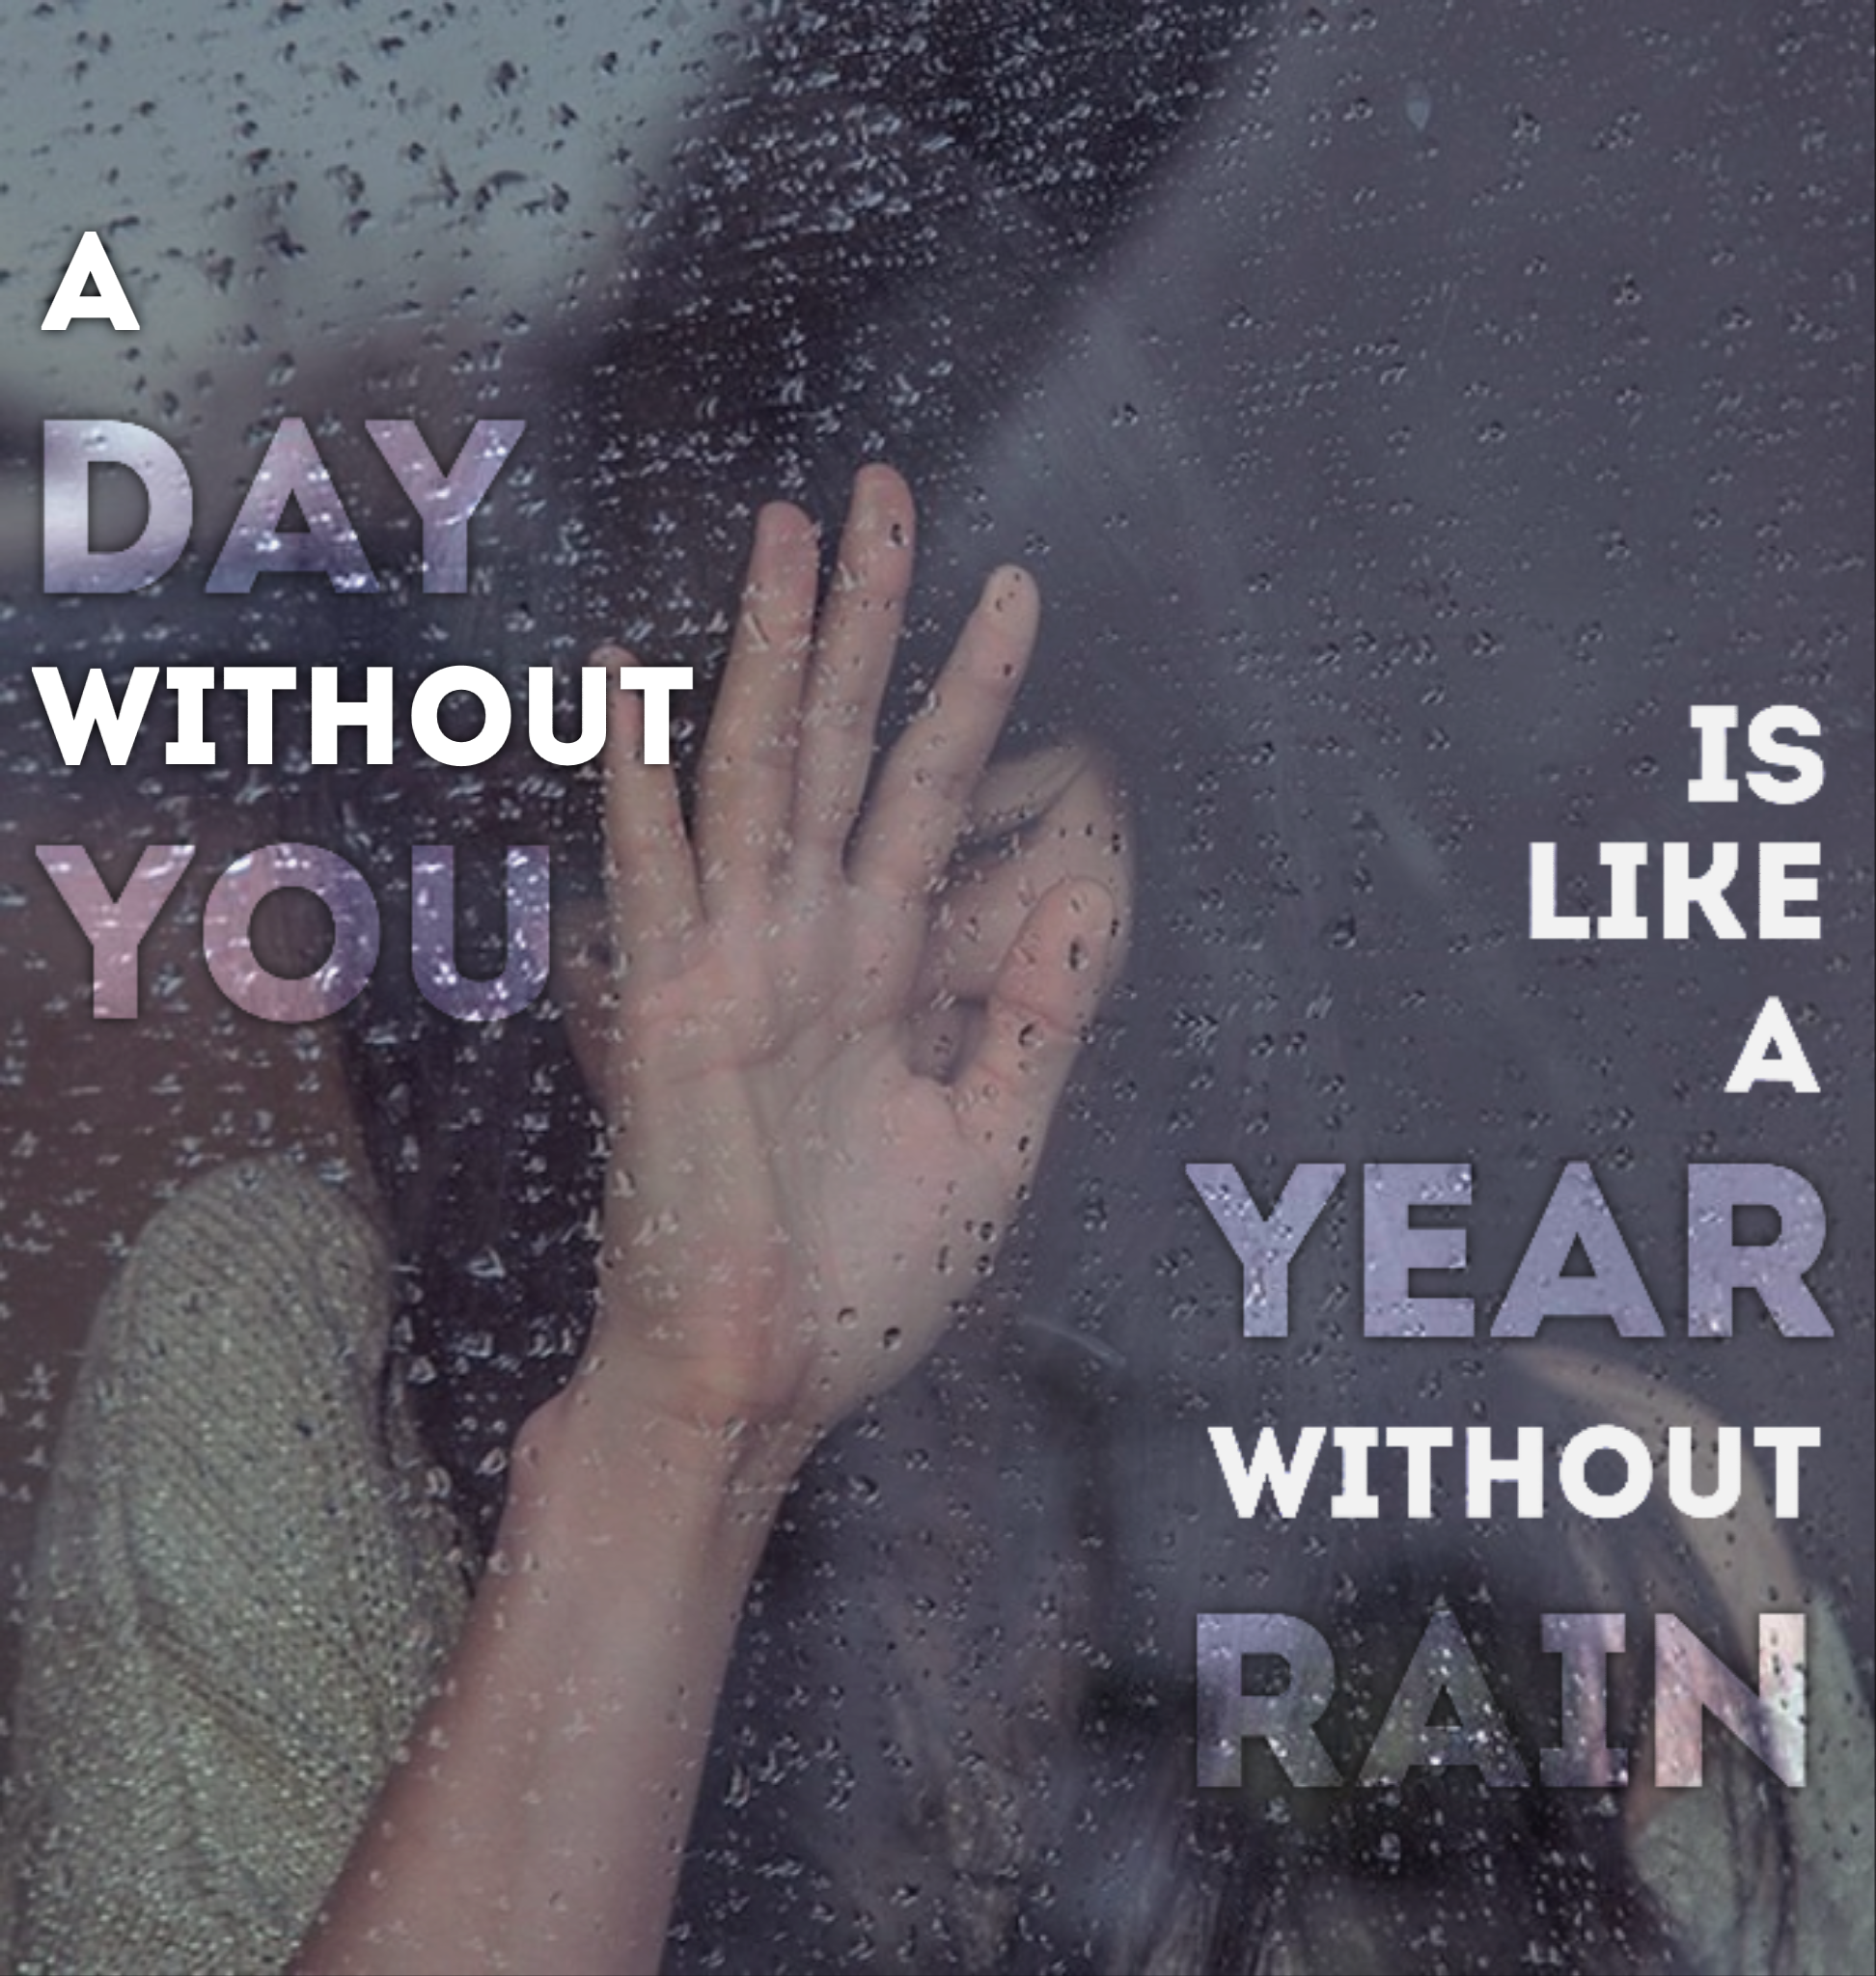 A Year Without Rain By Selena Gomez The Scenes Original Picture Without Filters And Words From Michelle Phan Michelle Phan Words Movie Quotes